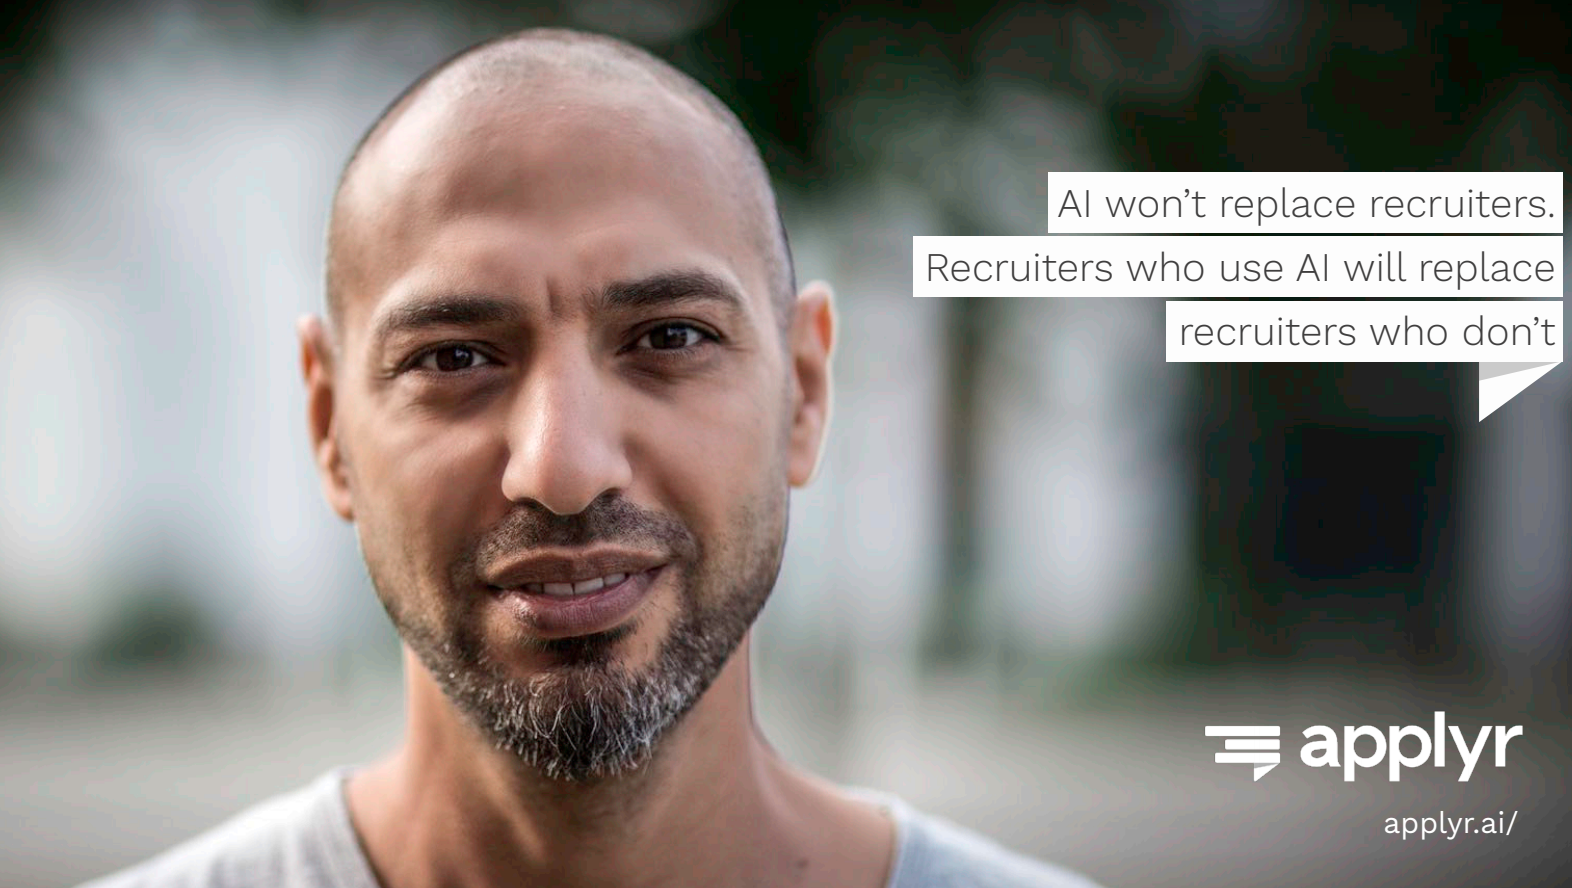 Cognitive Assistants, Recruiter Chatbots and AI @Wholi, from